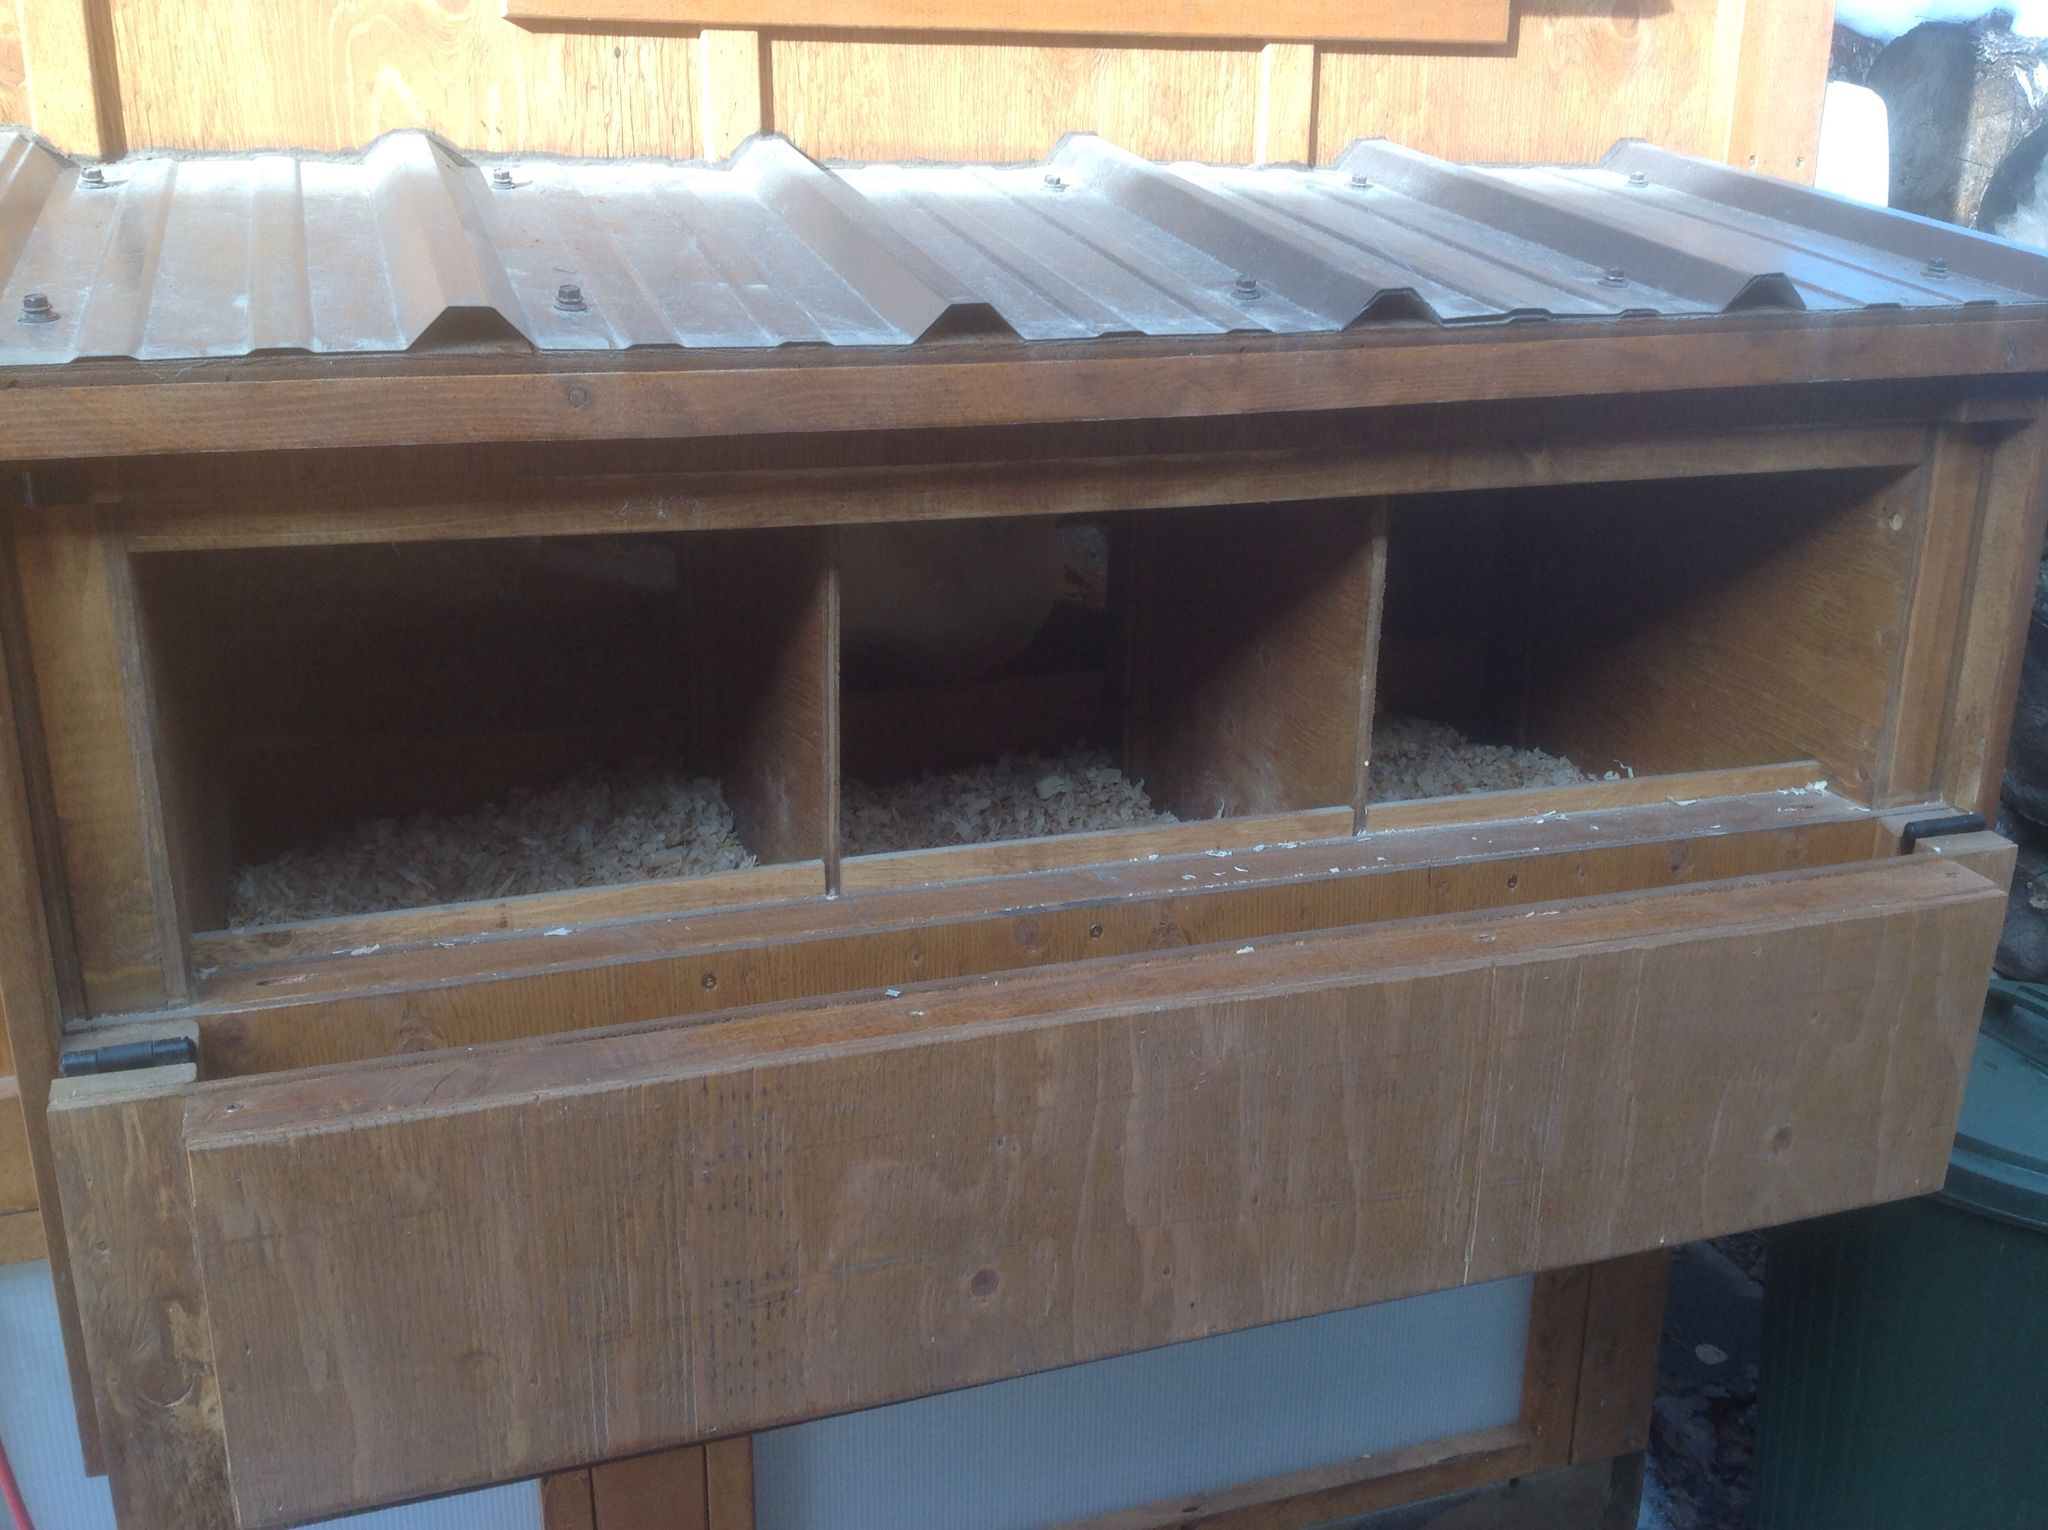 Insulated Chicken Coop 31 Nest boxes with fold down